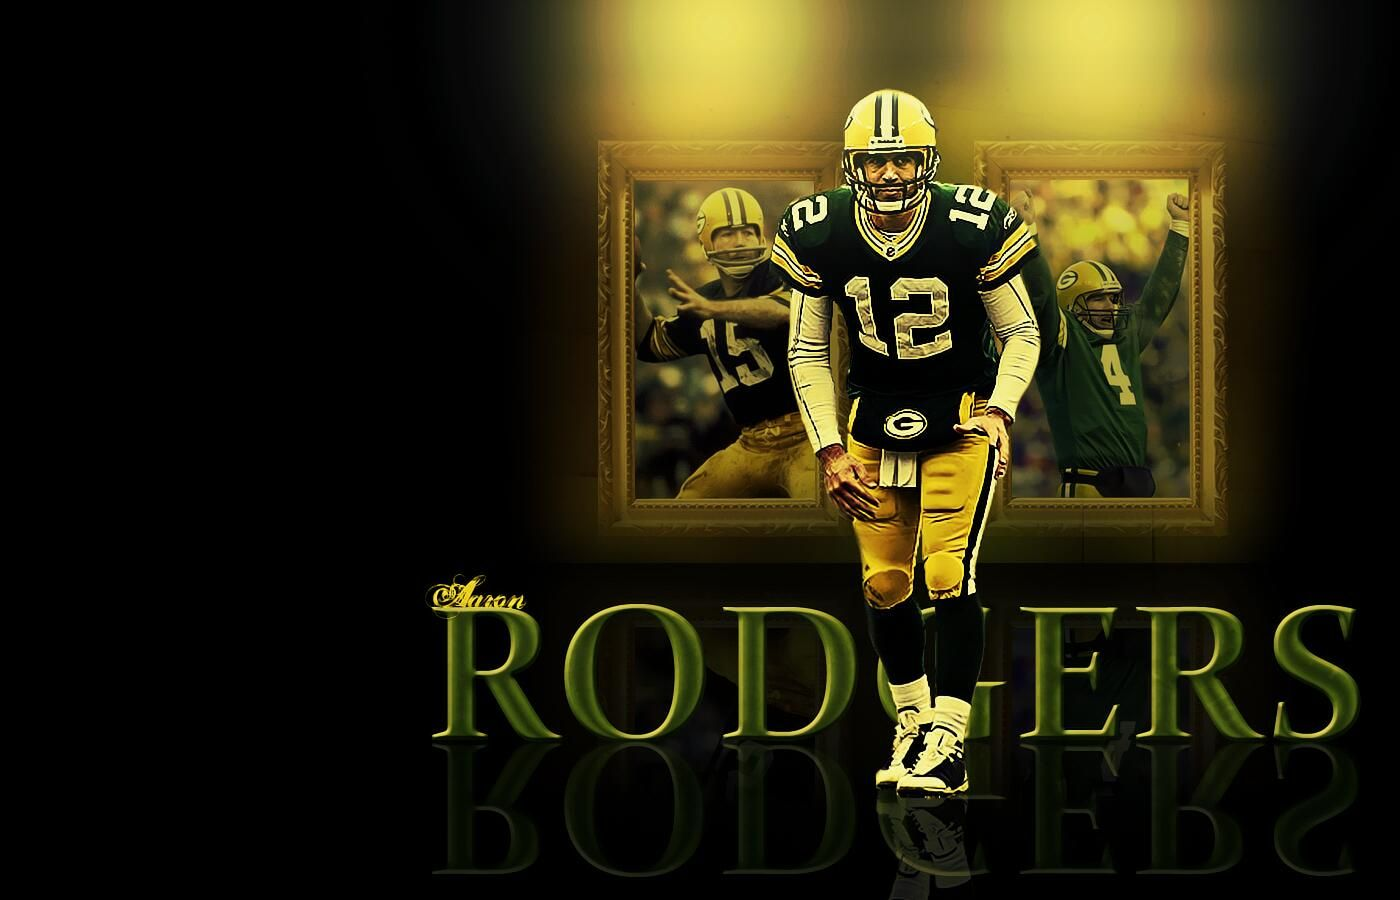 Aaron Rodgers Green Bay Packers Aaron Rodgers Green Bay Packers Nfl Green Bay